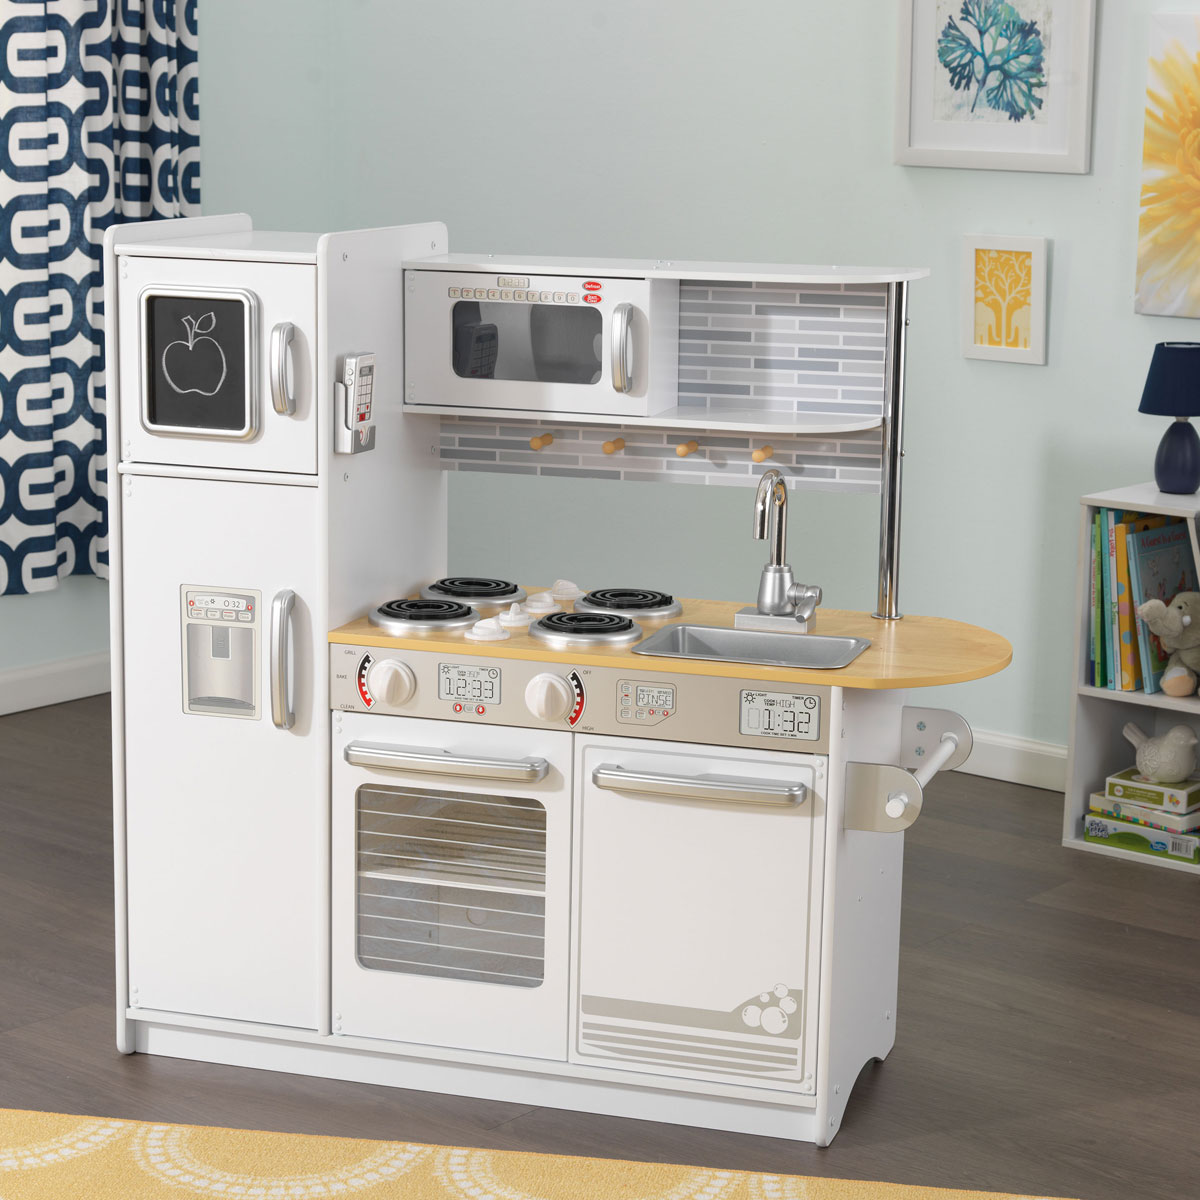 Kidkraft Kitchen White kidkraft uptown white kitchen 53335